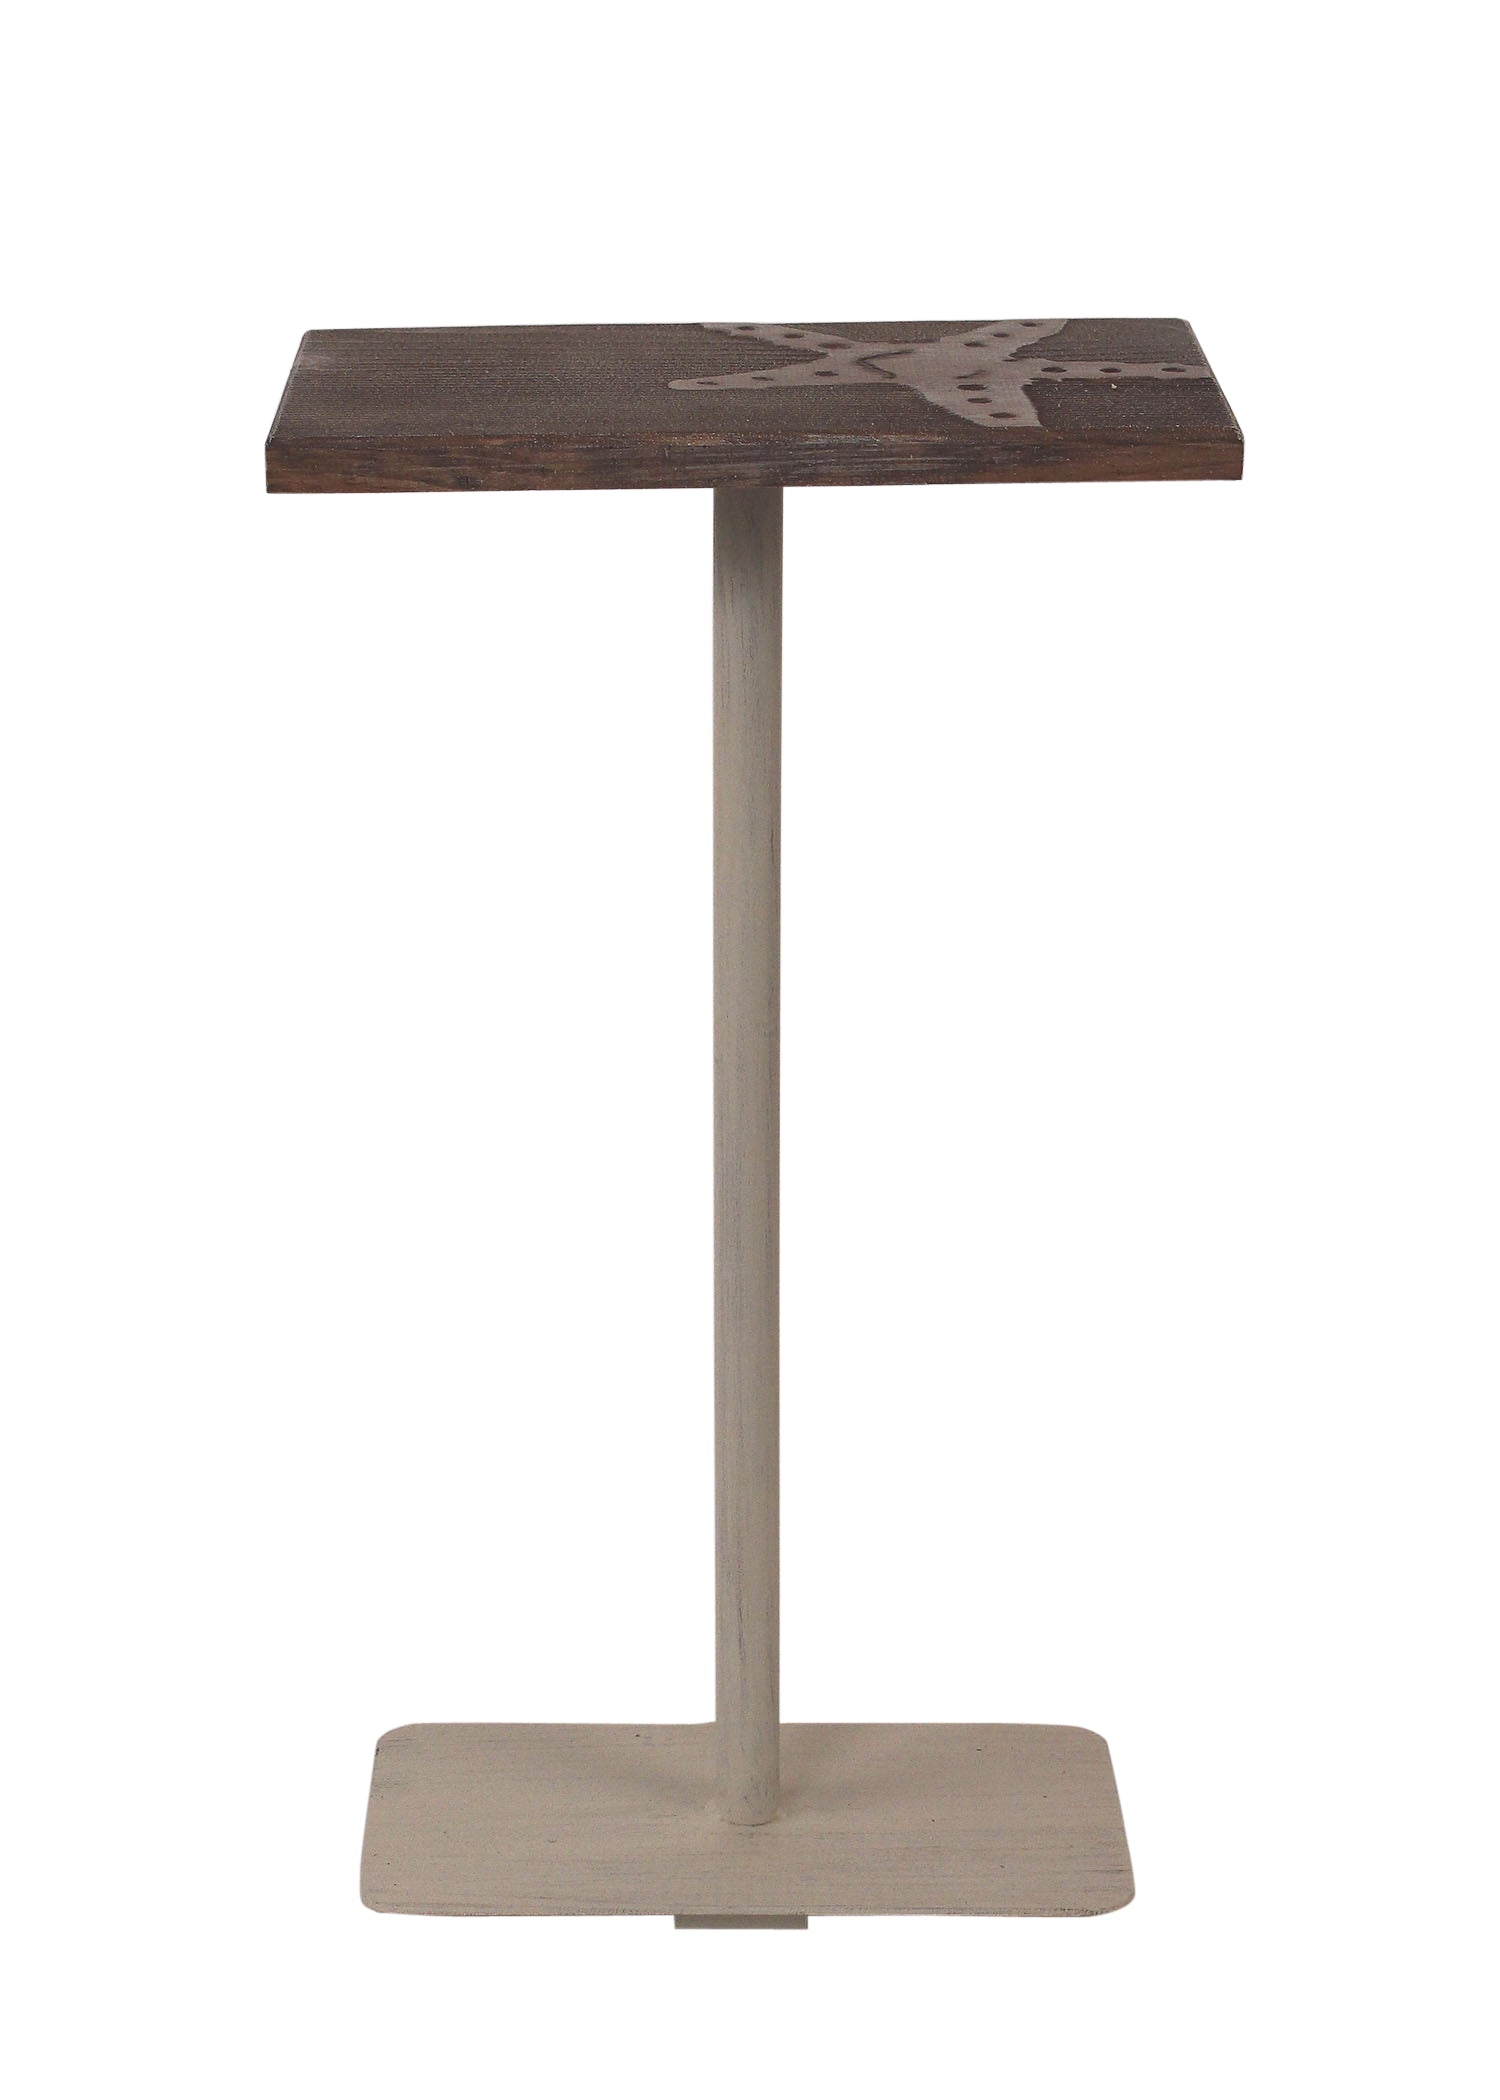 Cottage/Weathered Stain Wood Top Drink Table w/Starfish Accent - Coast Lamp Shop